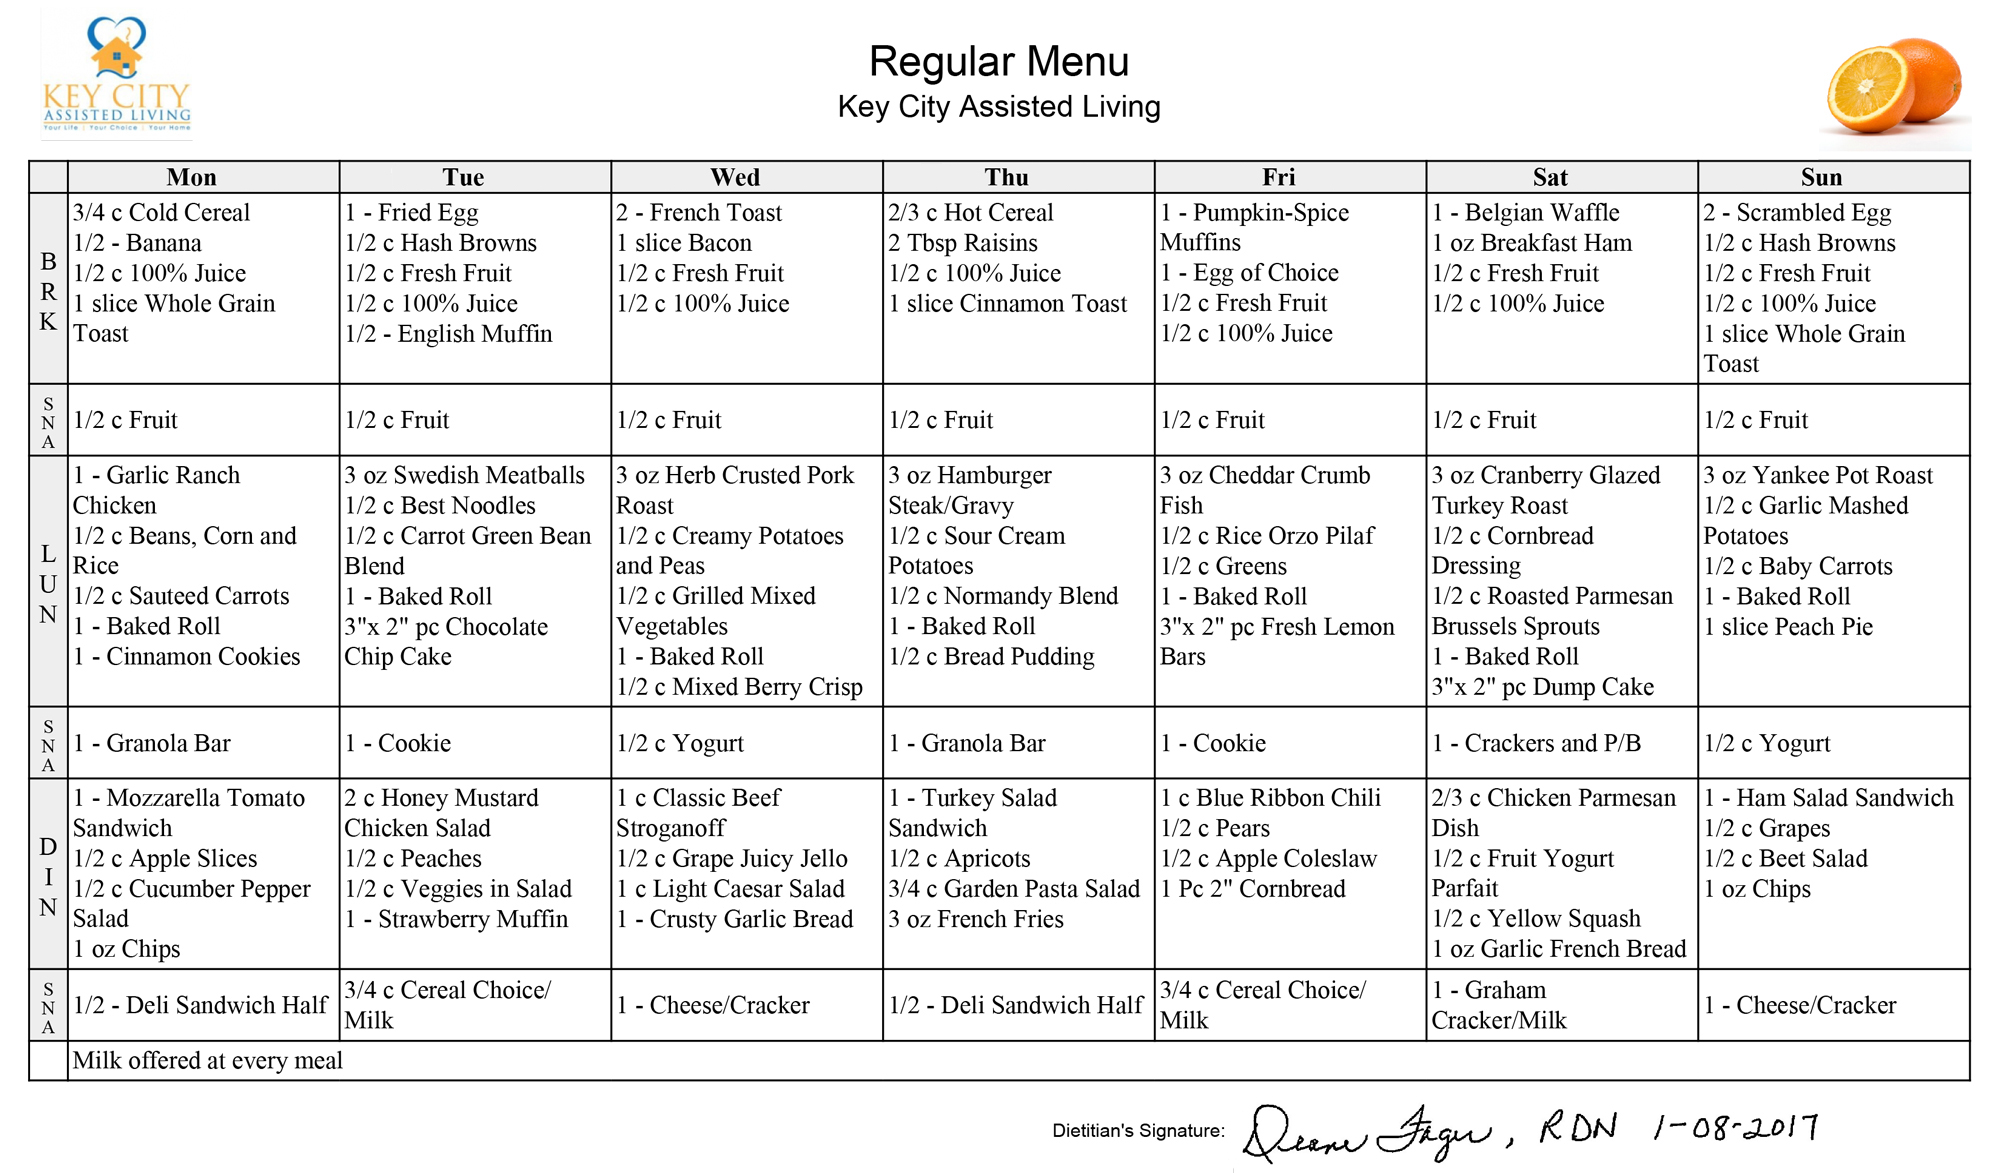 Sturgis' Key City Assisted Living - South Dakota - retirement community - residential care - regular menu sample - meals